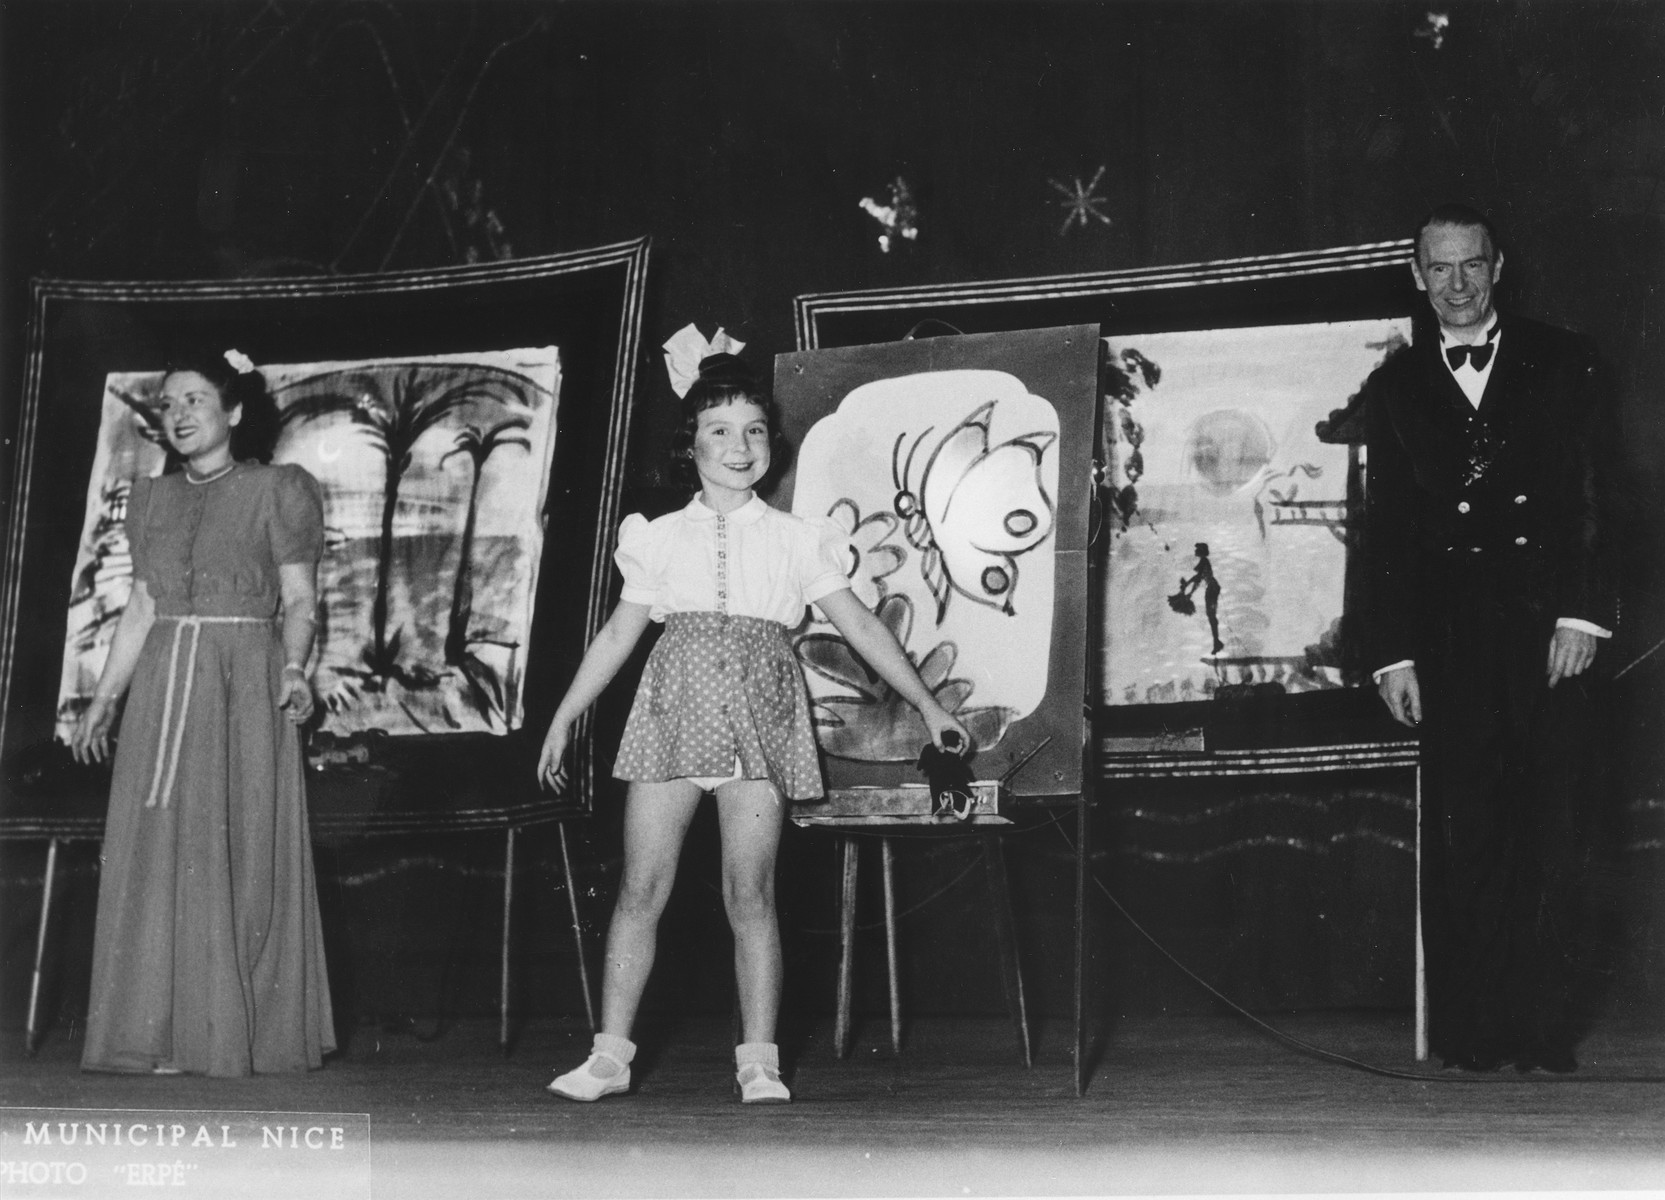 The Ruthling family performs a cabaret act while on tour in Nice.